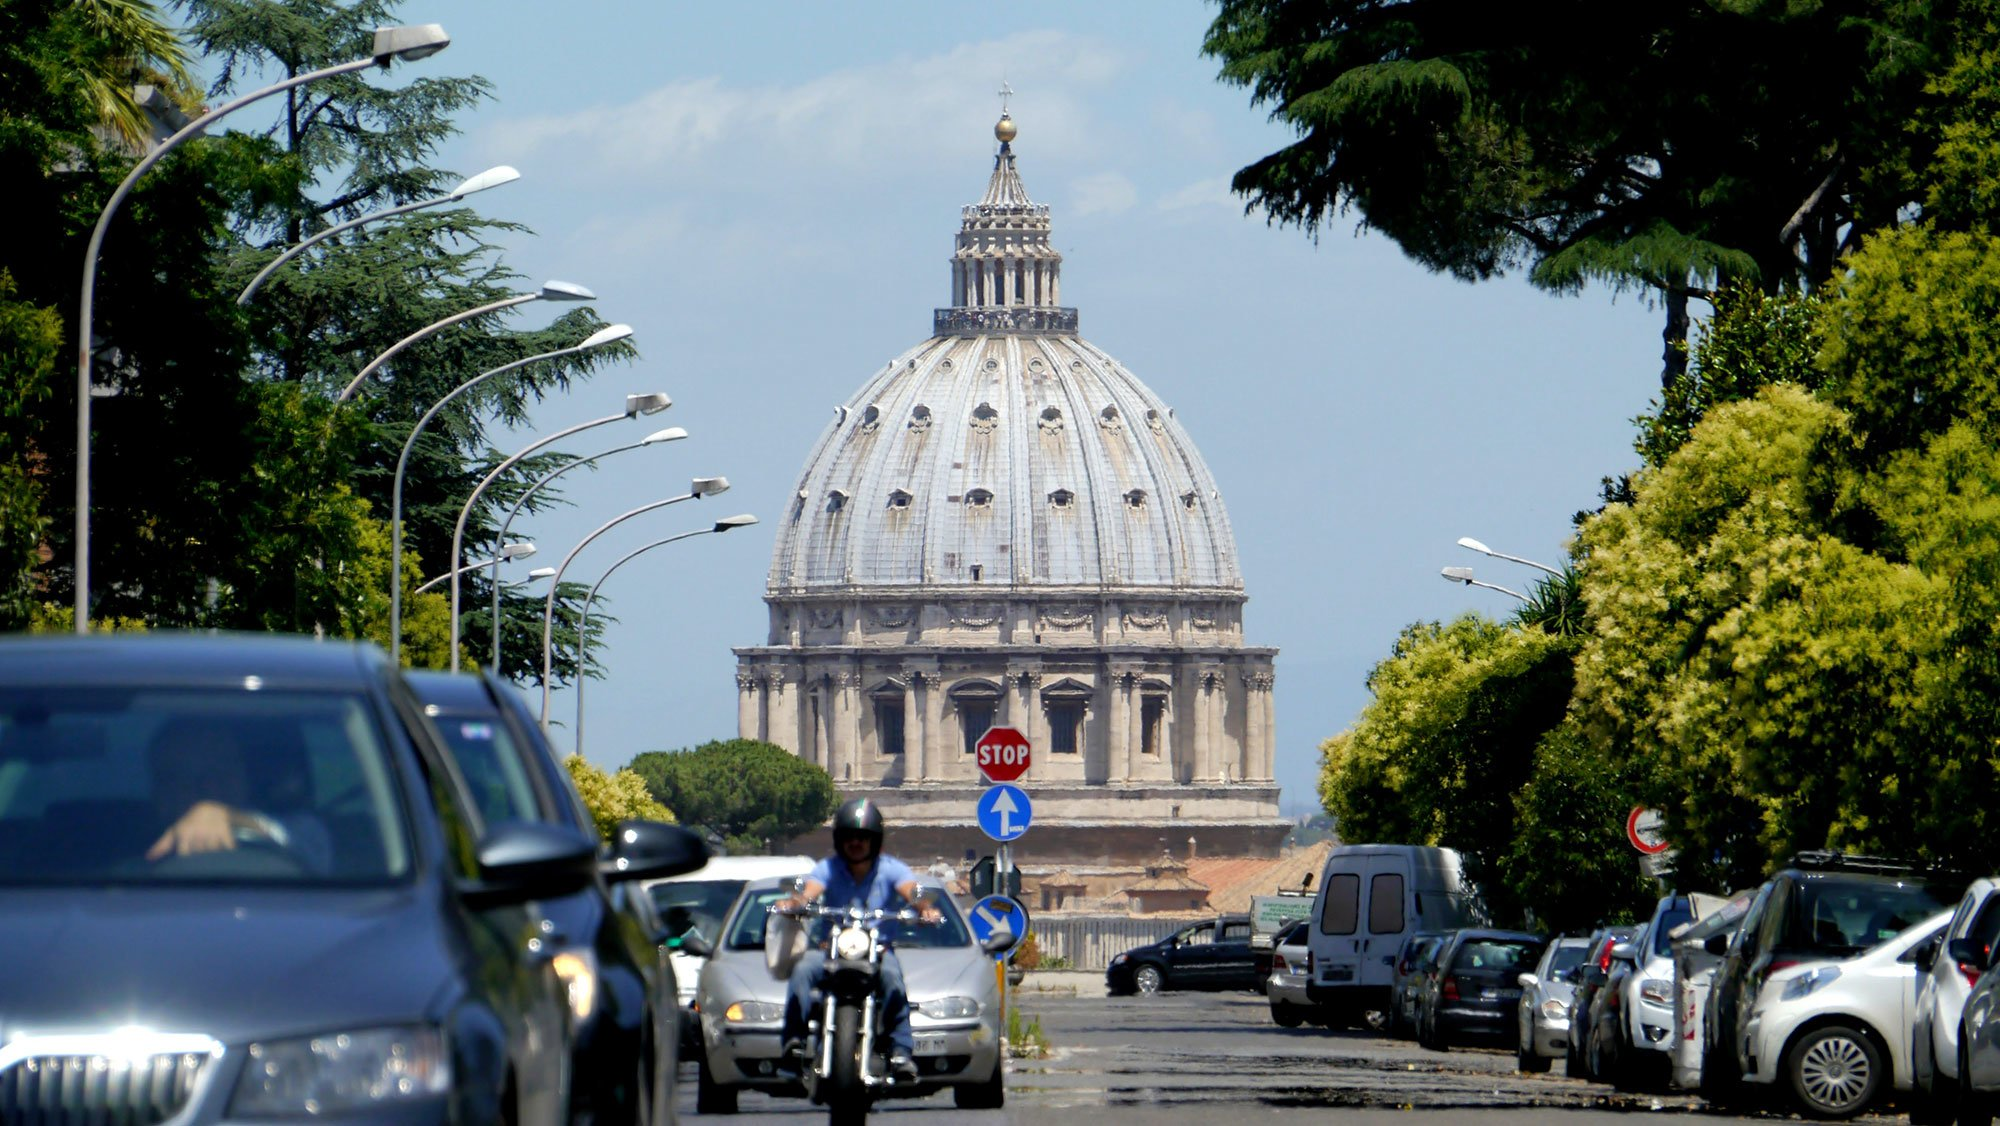 The optical illusion of St Peter's Basilica from Via Niccolò Piccolomini